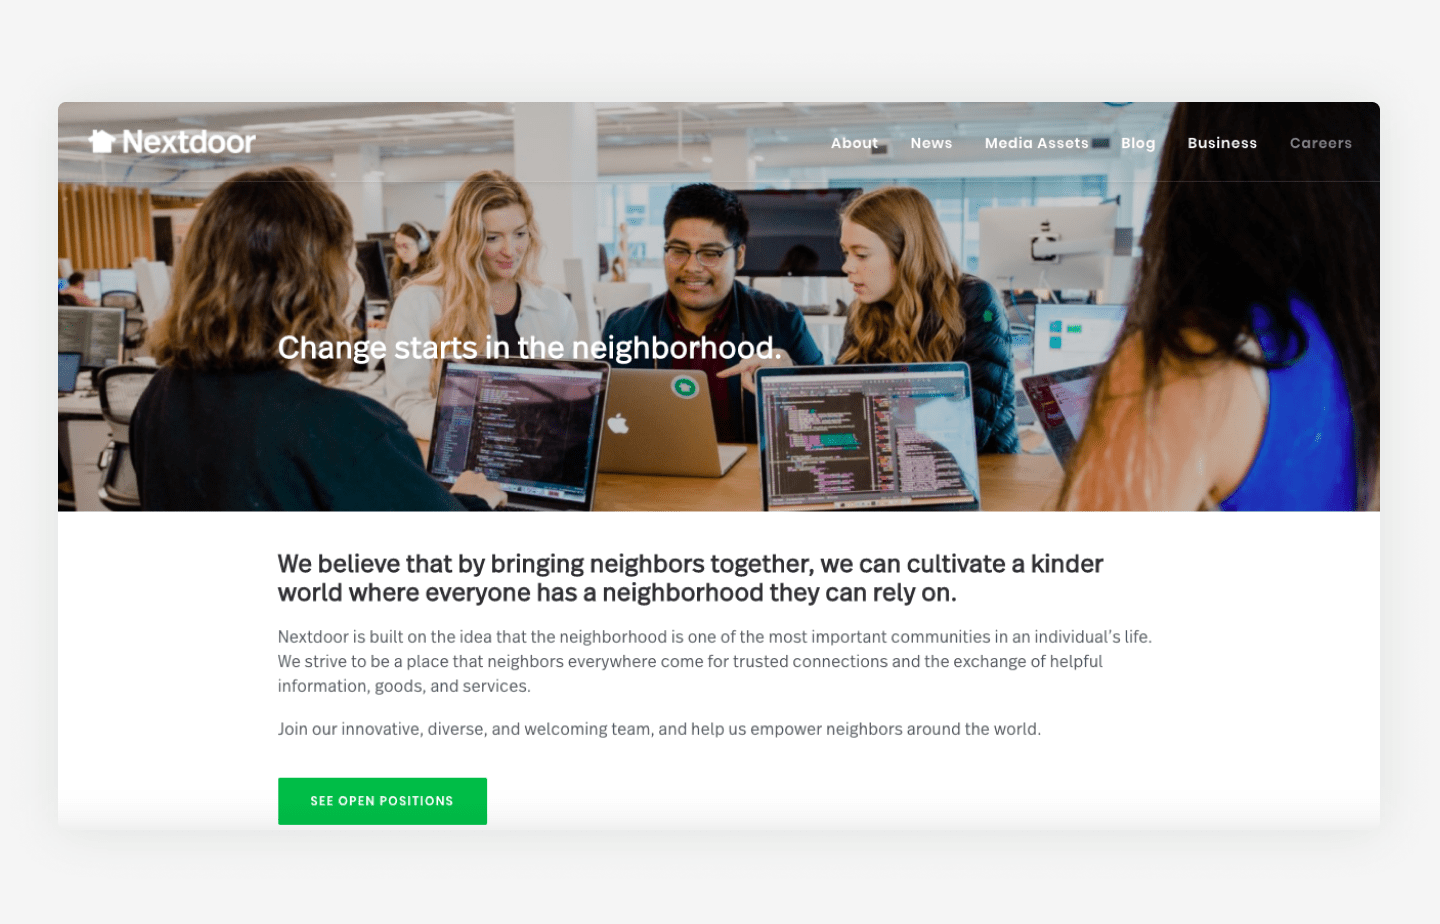 Nextdoor's website career page example